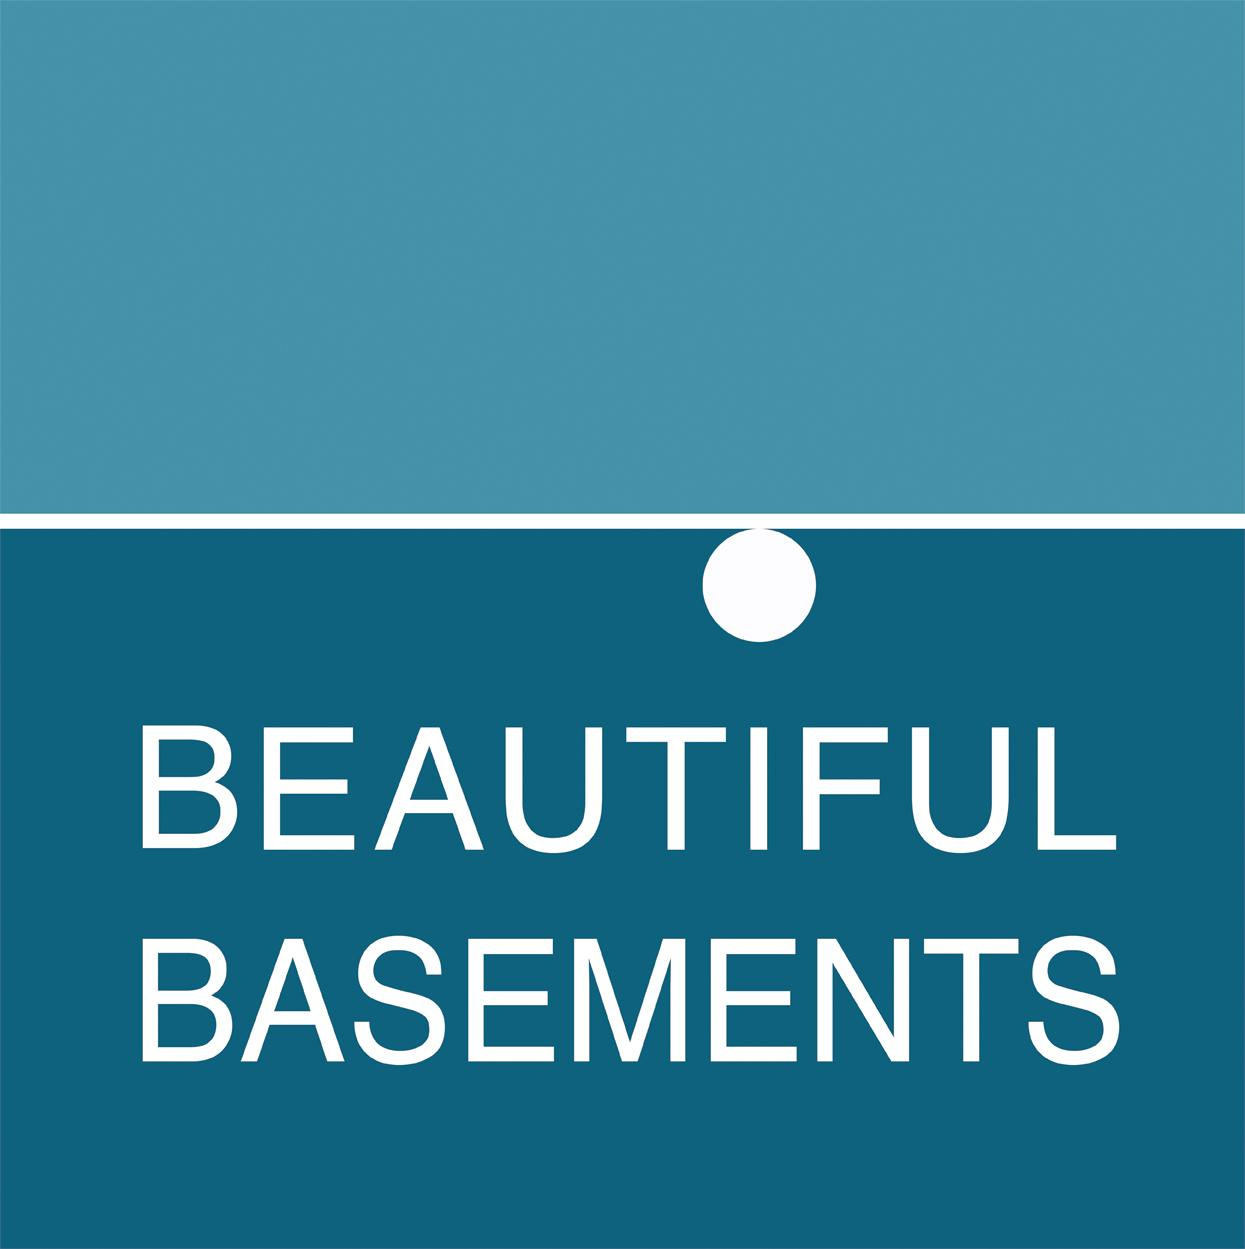 Beautiful Basements